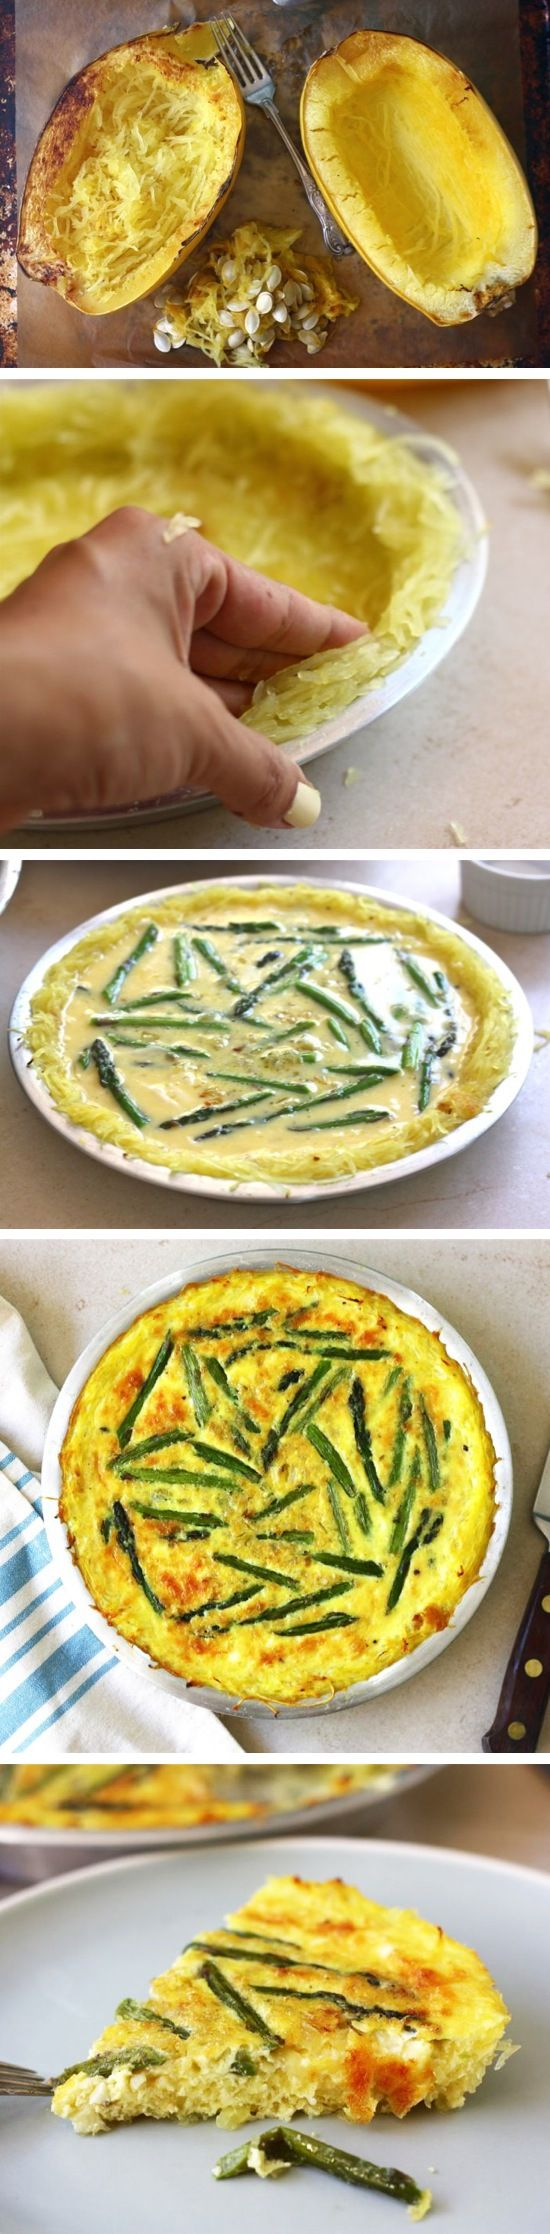 Squash Crusted Aparagus Quiche Recipe - made with carmelized onions, prosciutto, blue cheese, spinach and purple potatoes instead. No prosciutto for me!